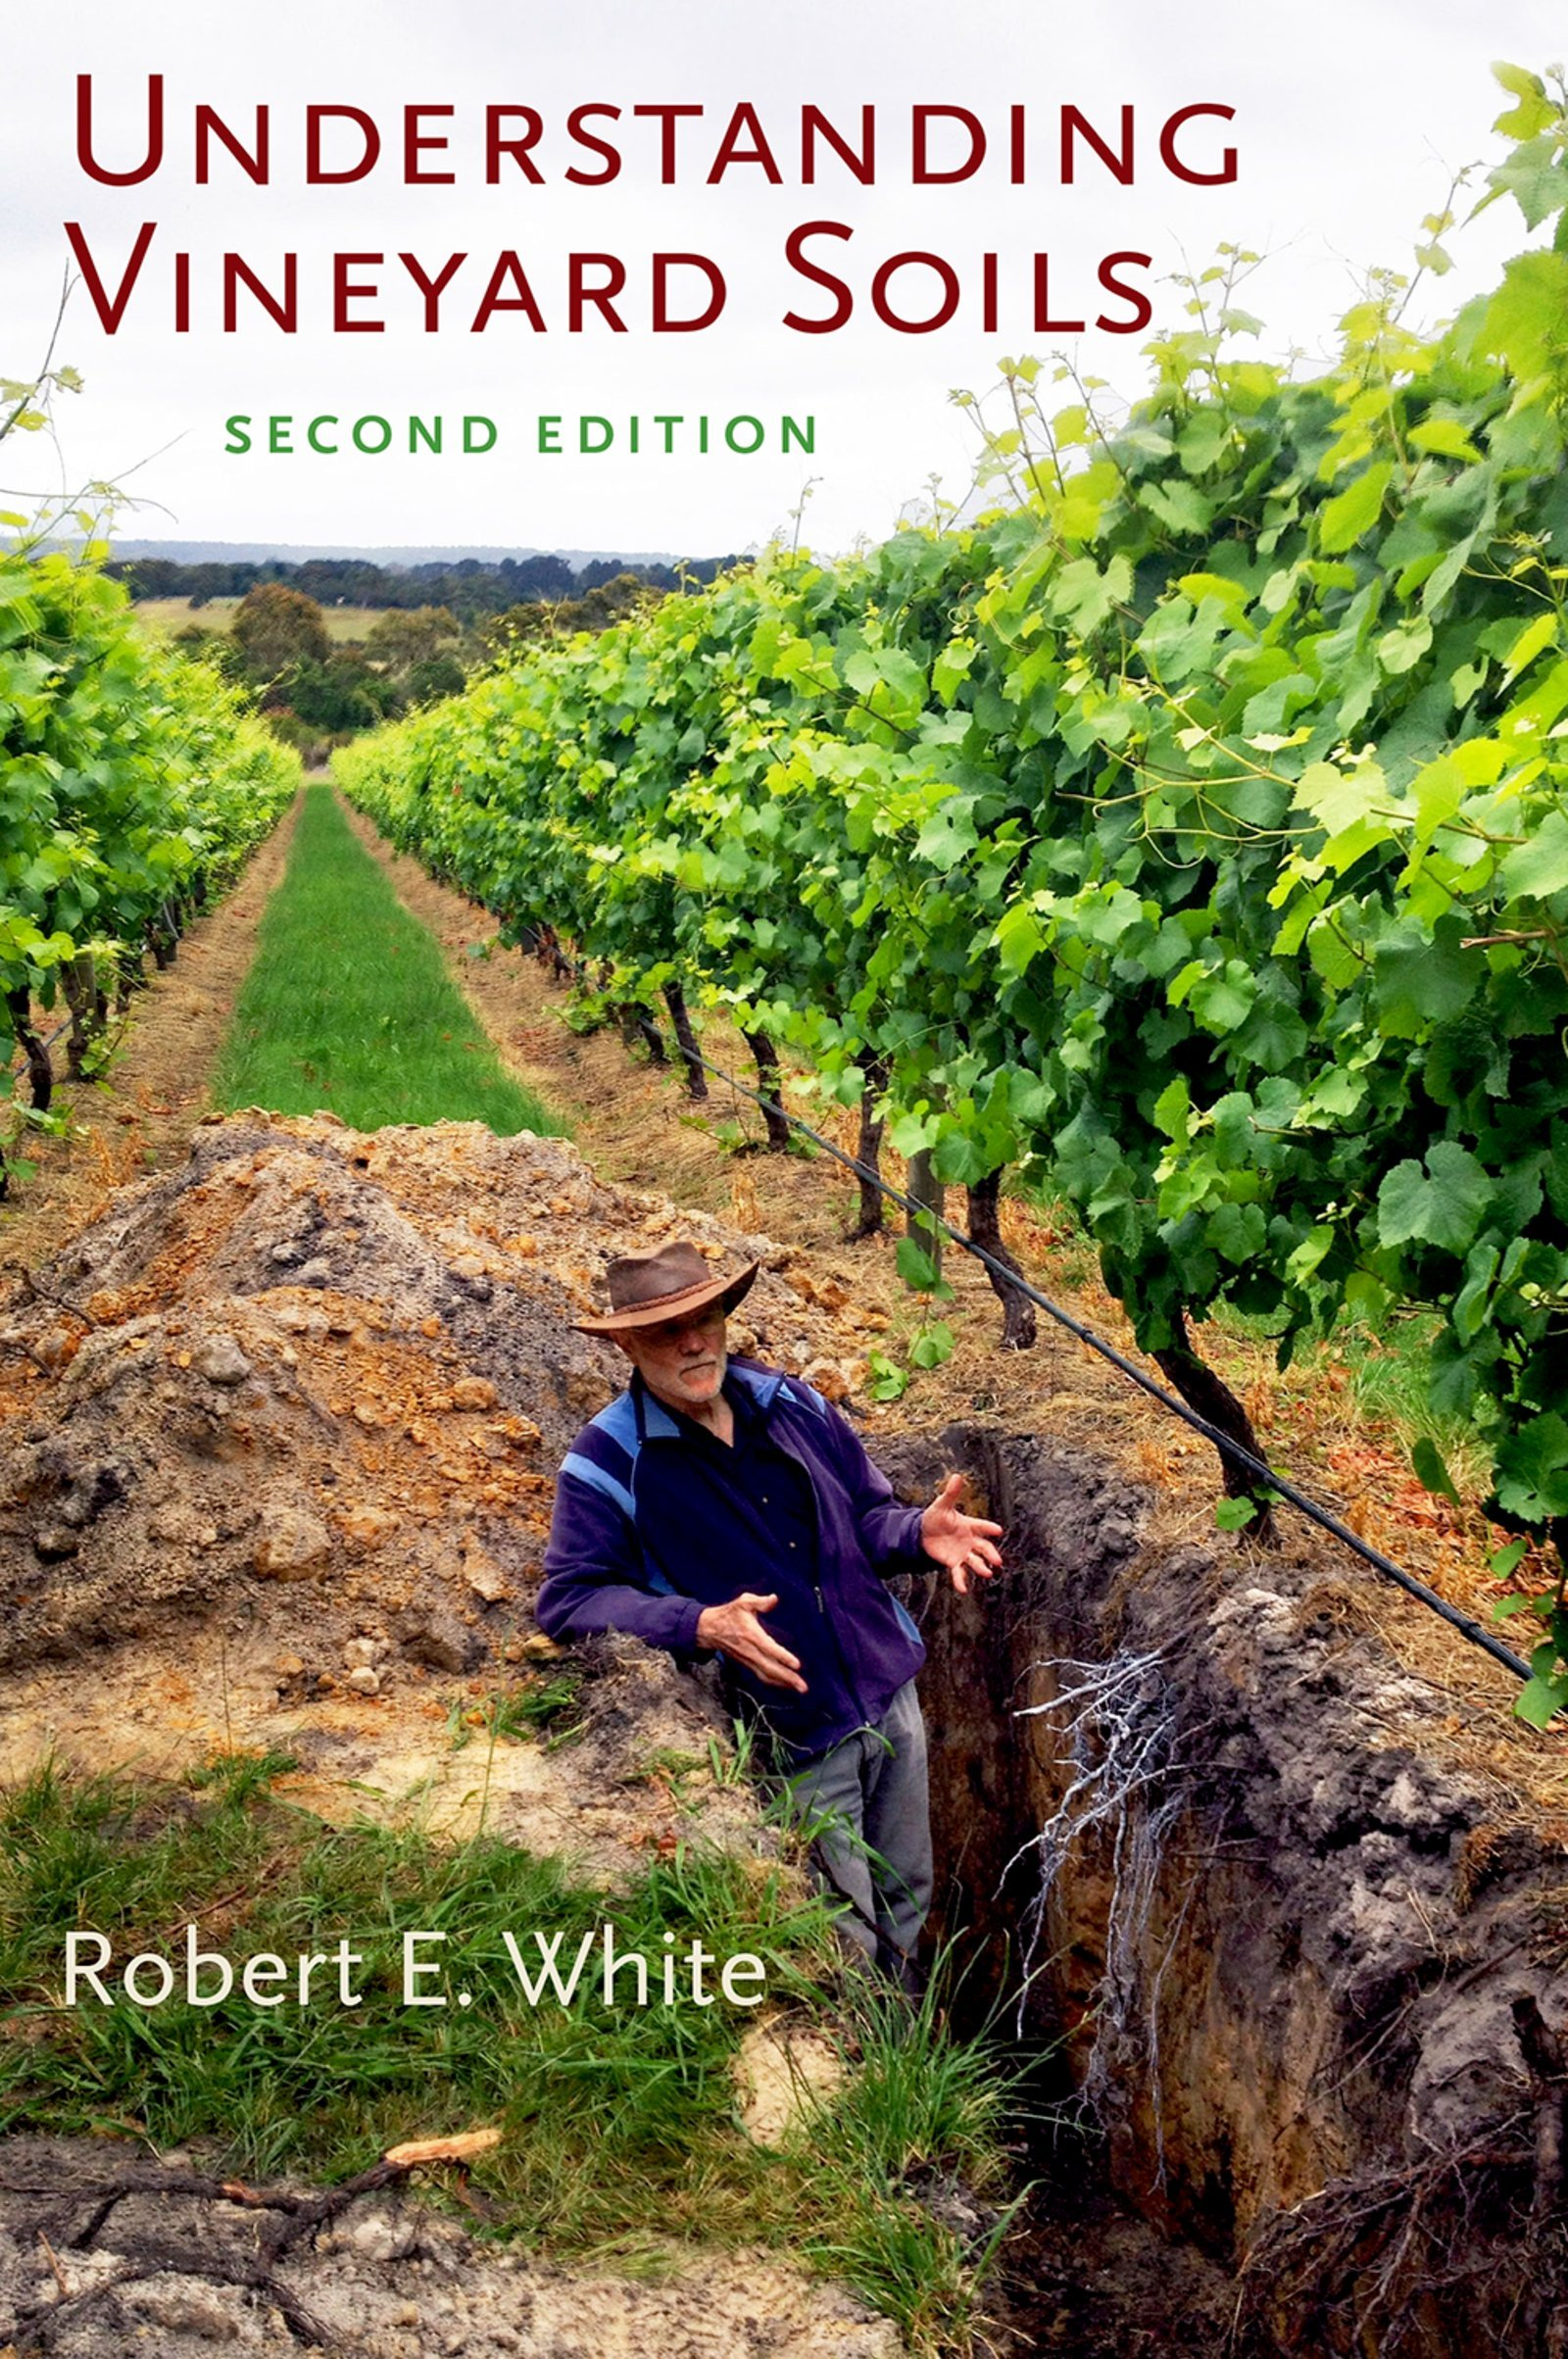 Image OfUnderstanding Vineyard Soils (English Edition)